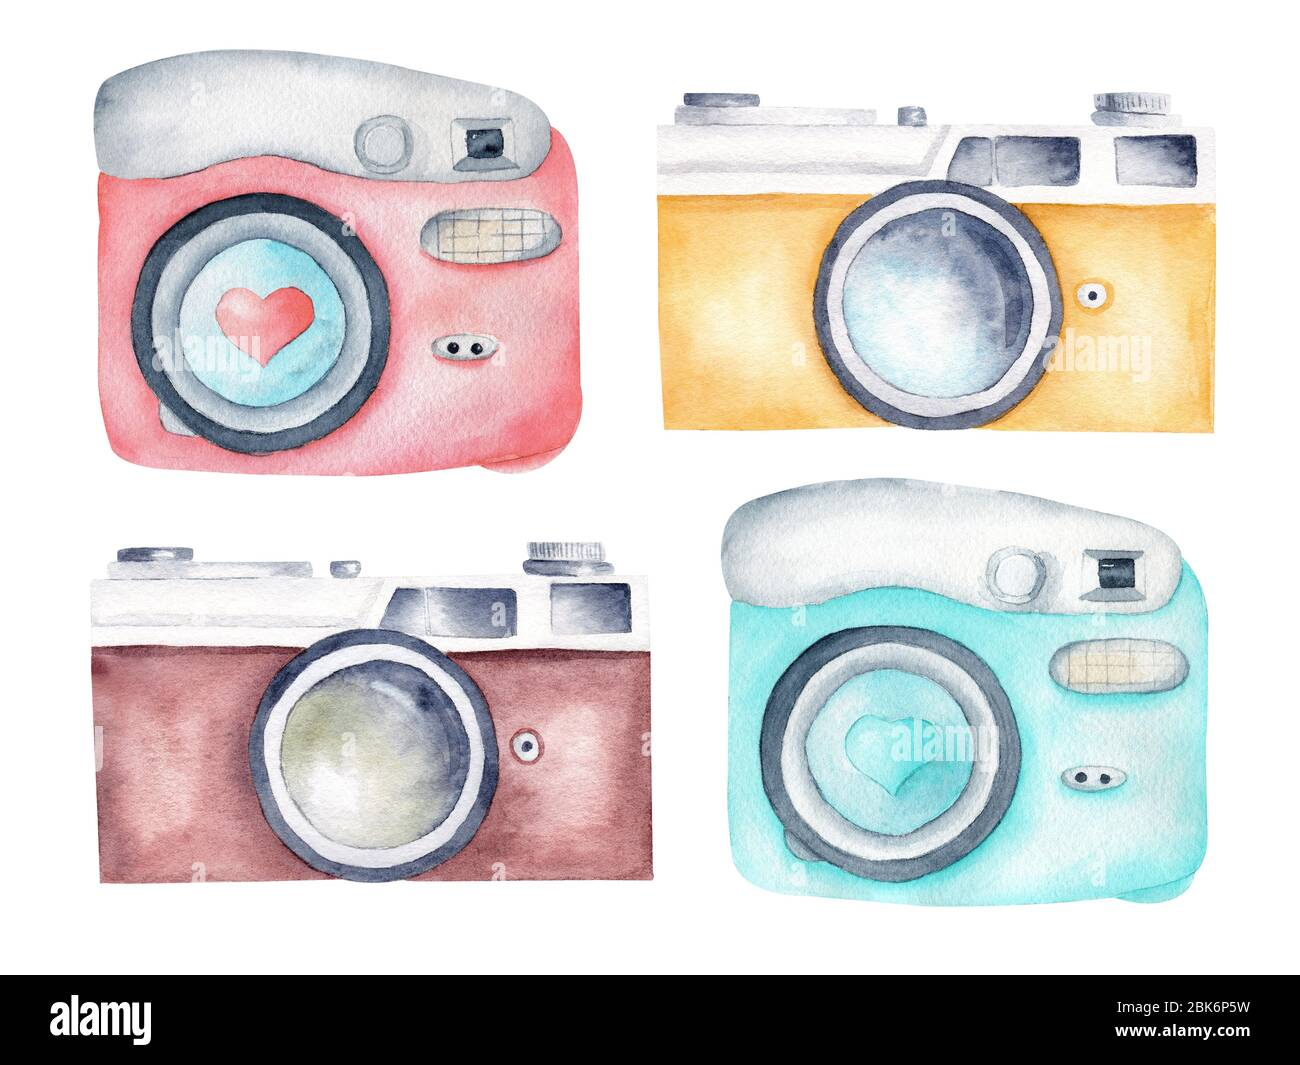 Vintage Retro Cameras Watercolor Clipart Illustration For Photography Logo Card Design Hand Painted Artwork Isolated On White Background Stock Photo Alamy